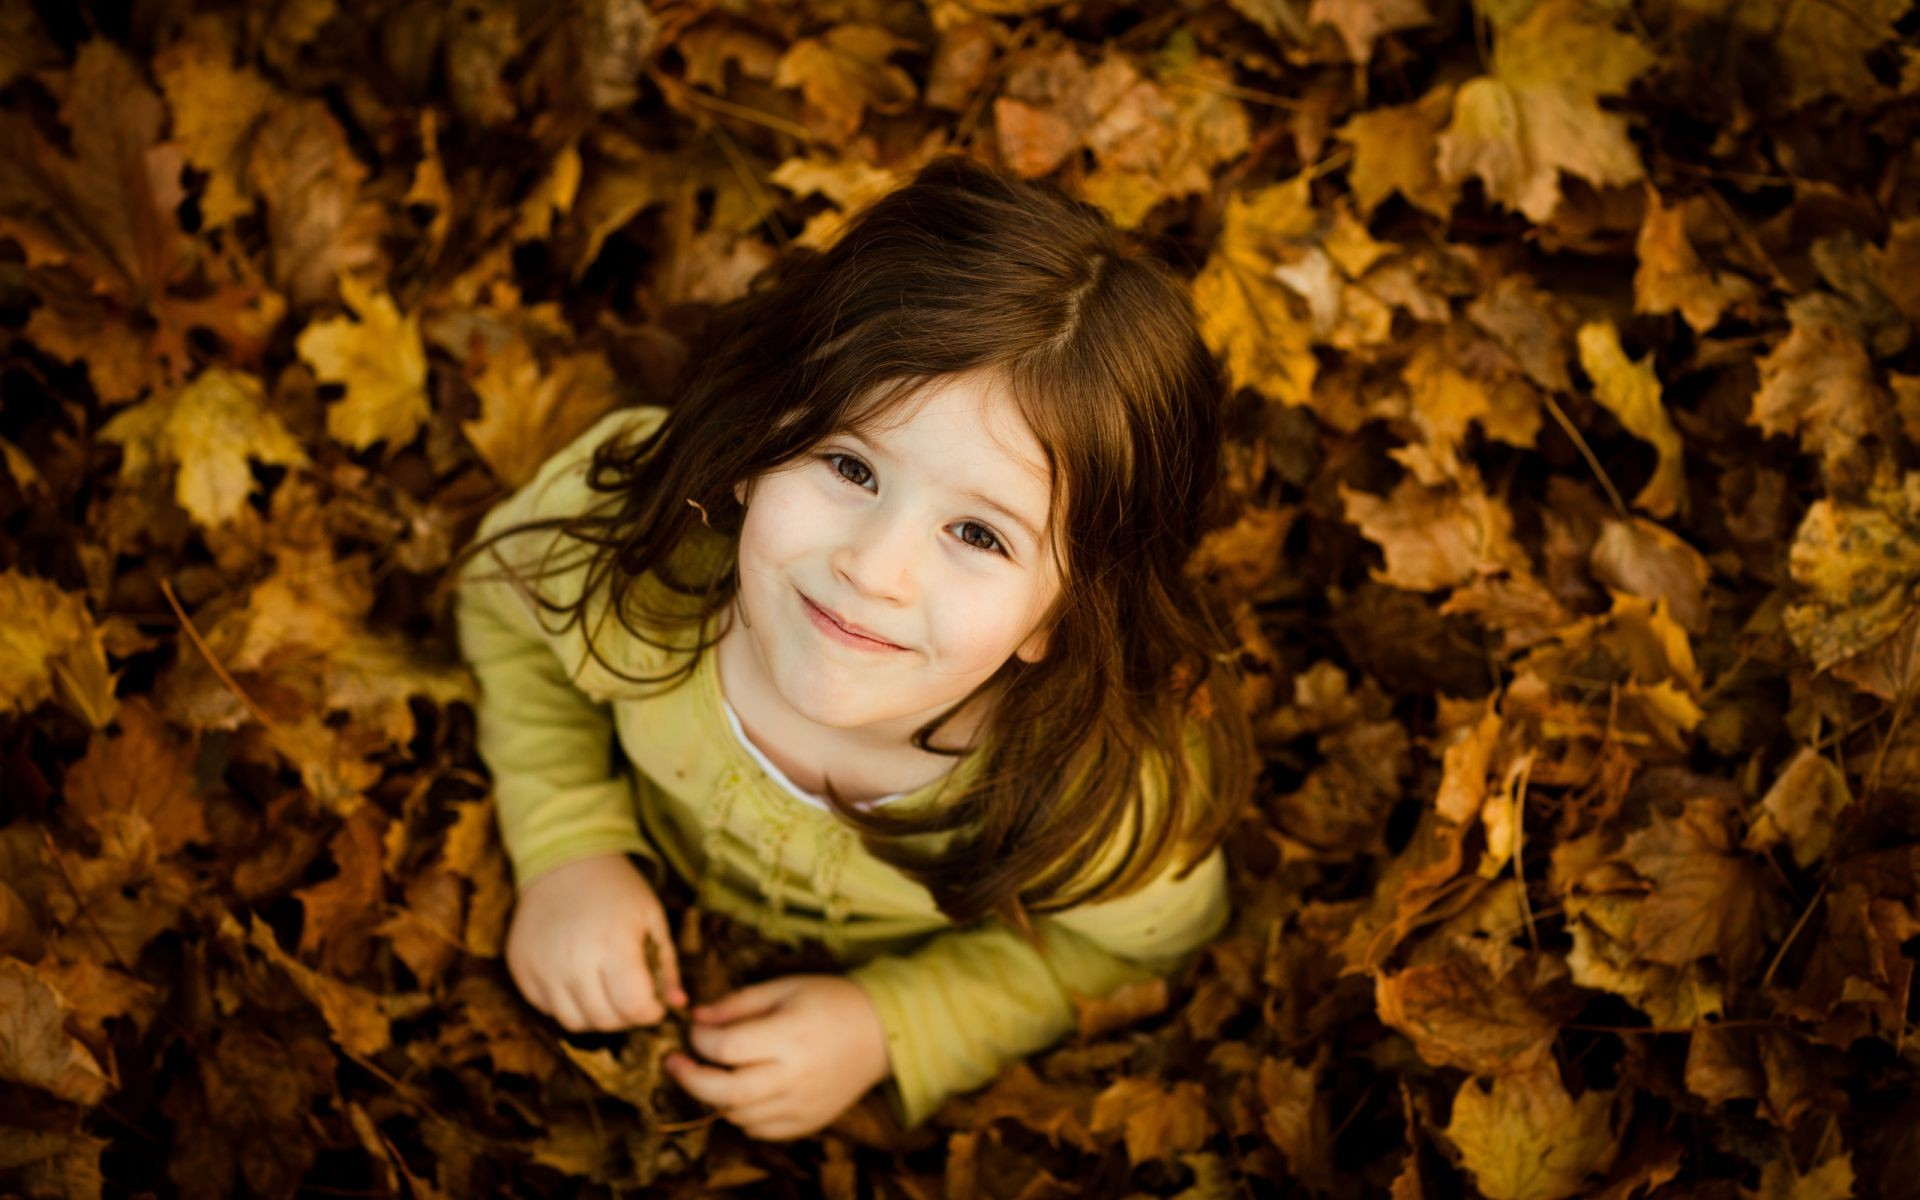 Laughing Children Fall Nature Girl Leaf Wood Maple - Prety Baby Girl , HD Wallpaper & Backgrounds